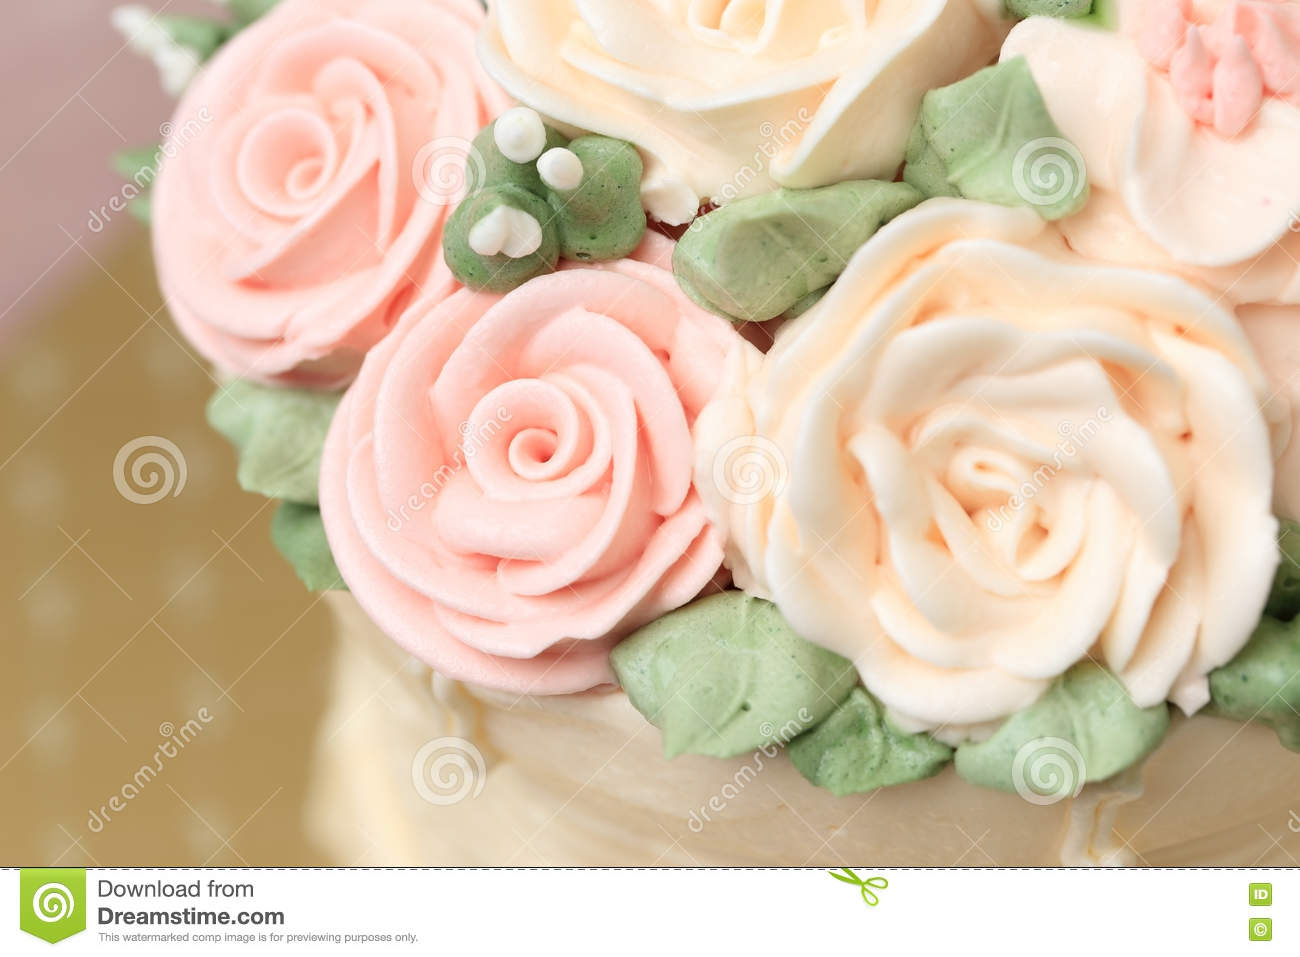 Close up of wedding or birthday cake decorated with flowers made close up of wedding or birthday cake decorated with flowers made from cream izmirmasajfo